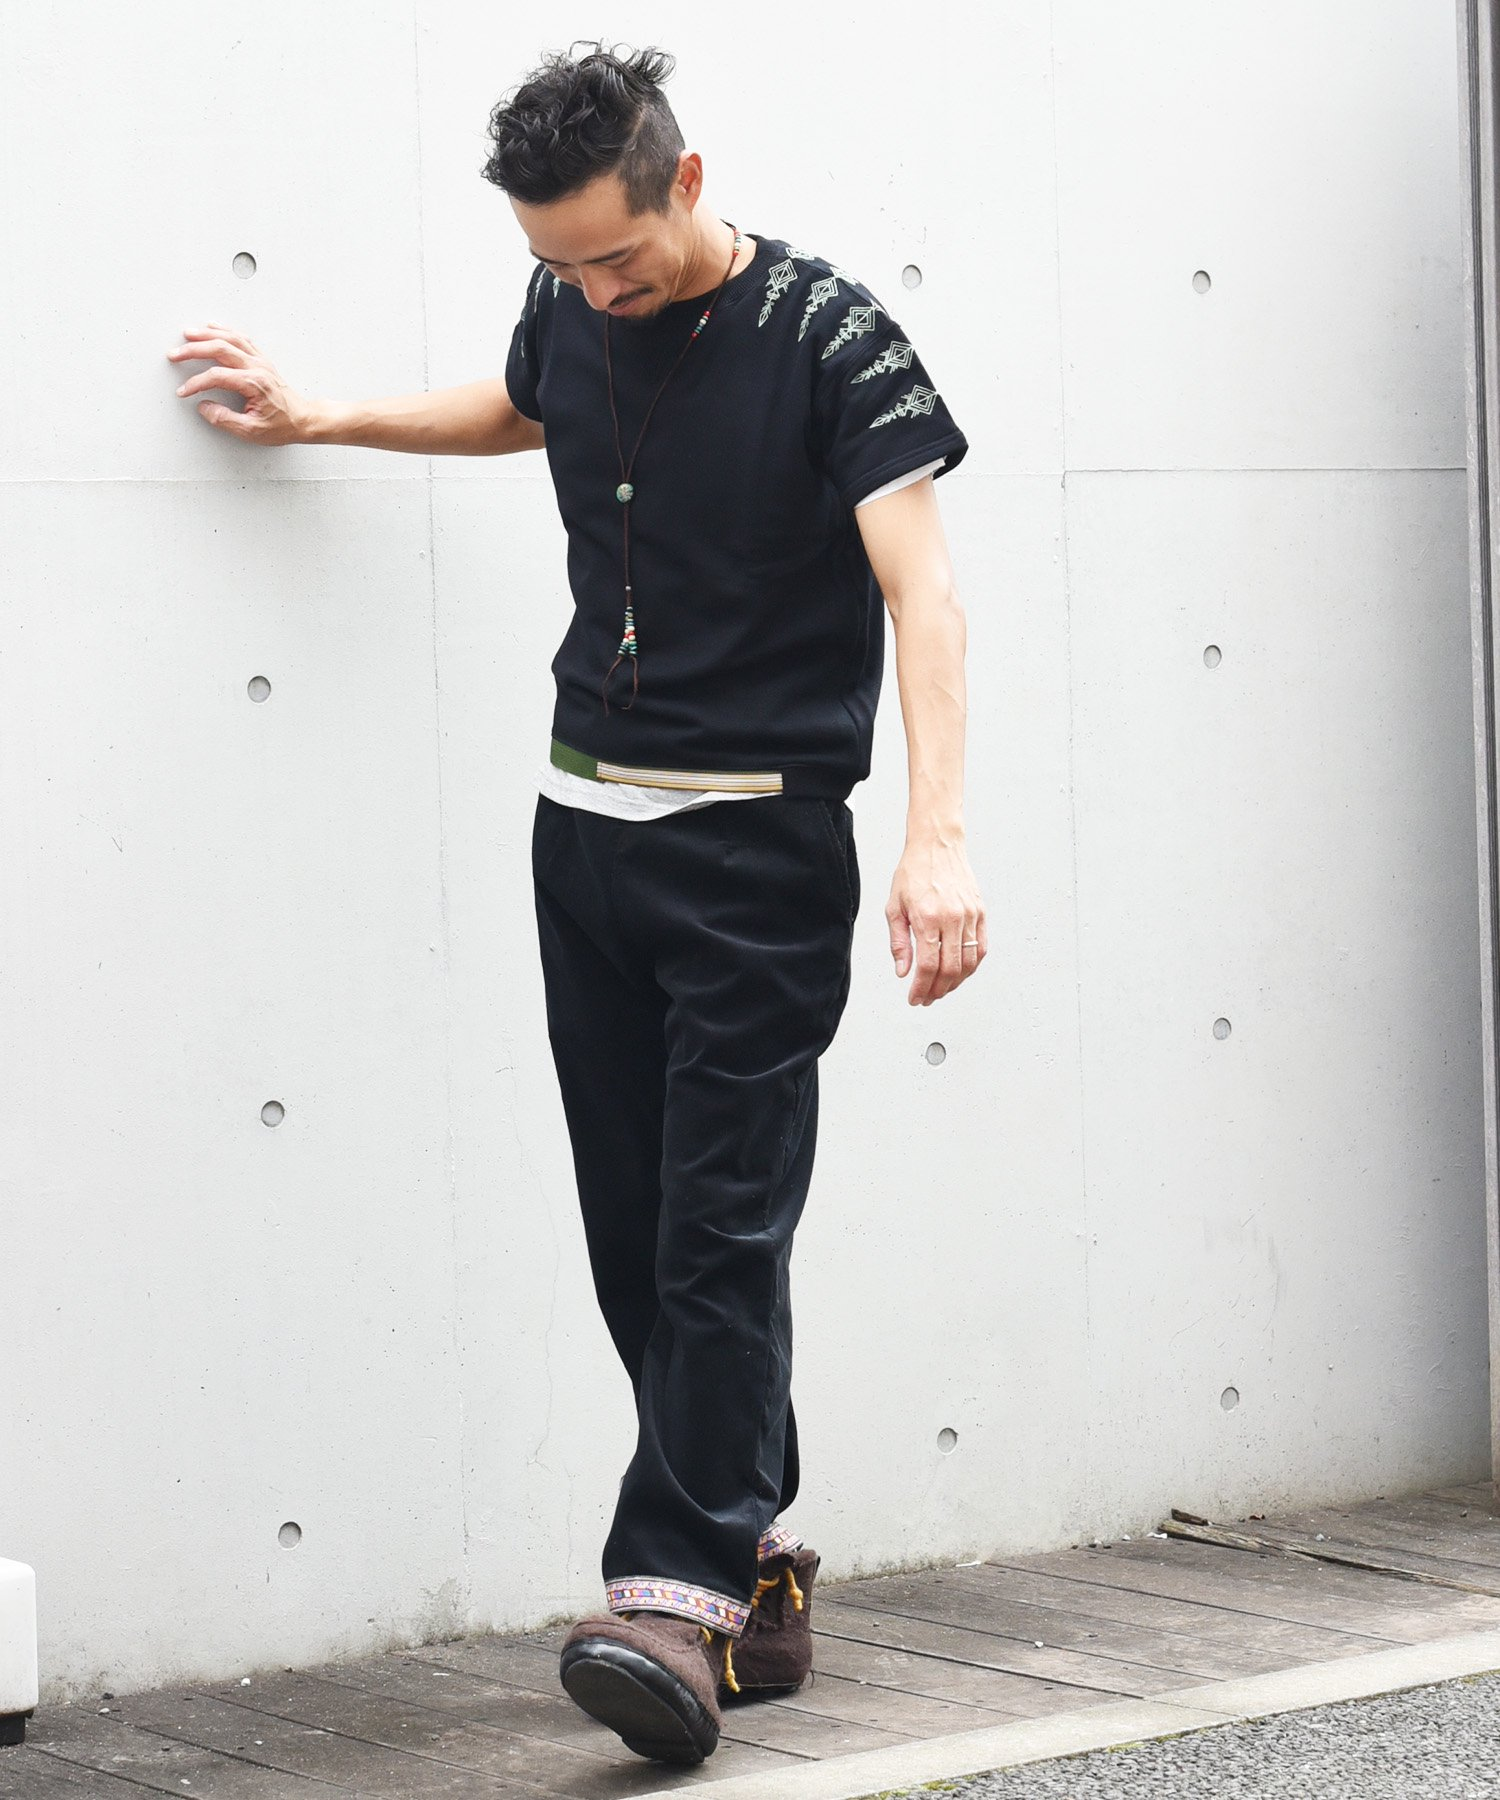 ARIGATO FAKKYU - アリガトファッキュ EMBROIDERY SWEAT / BLACK<img class='new_mark_img2' src='https://img.shop-pro.jp/img/new/icons5.gif' style='border:none;display:inline;margin:0px;padding:0px;width:auto;' />